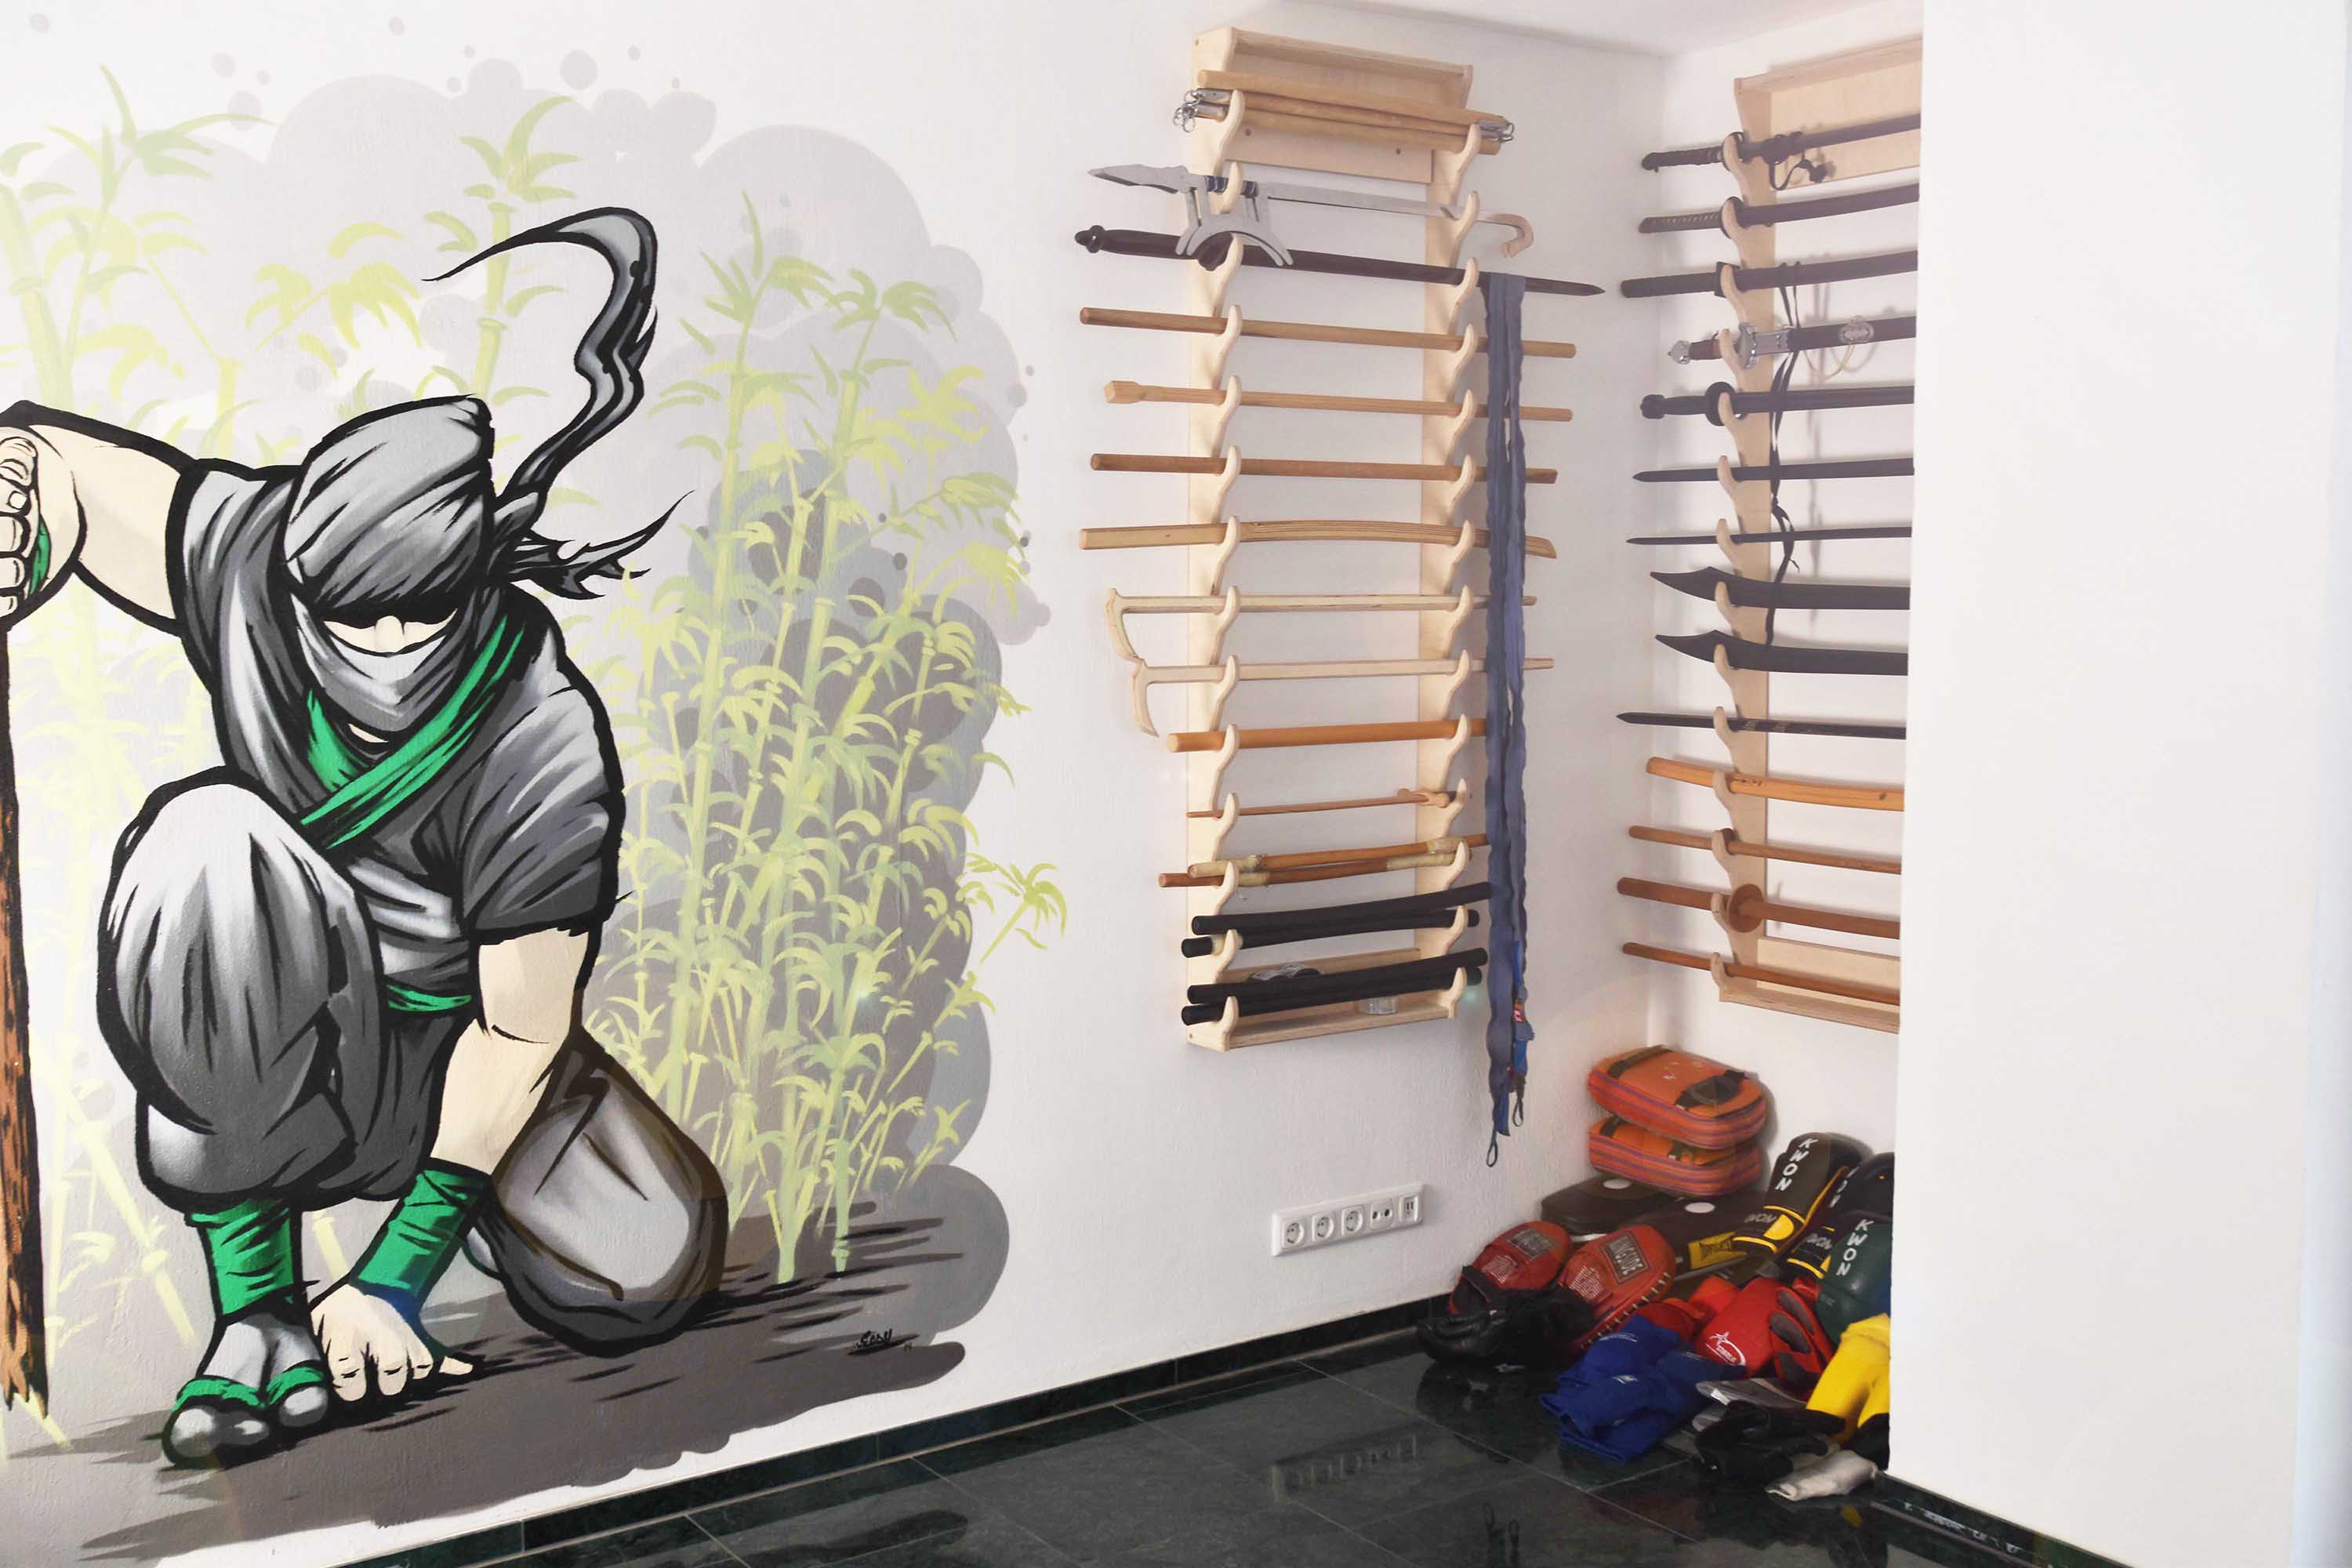 RONIN_DOJO_Traditionelles_Thaiboxen_Graffiti